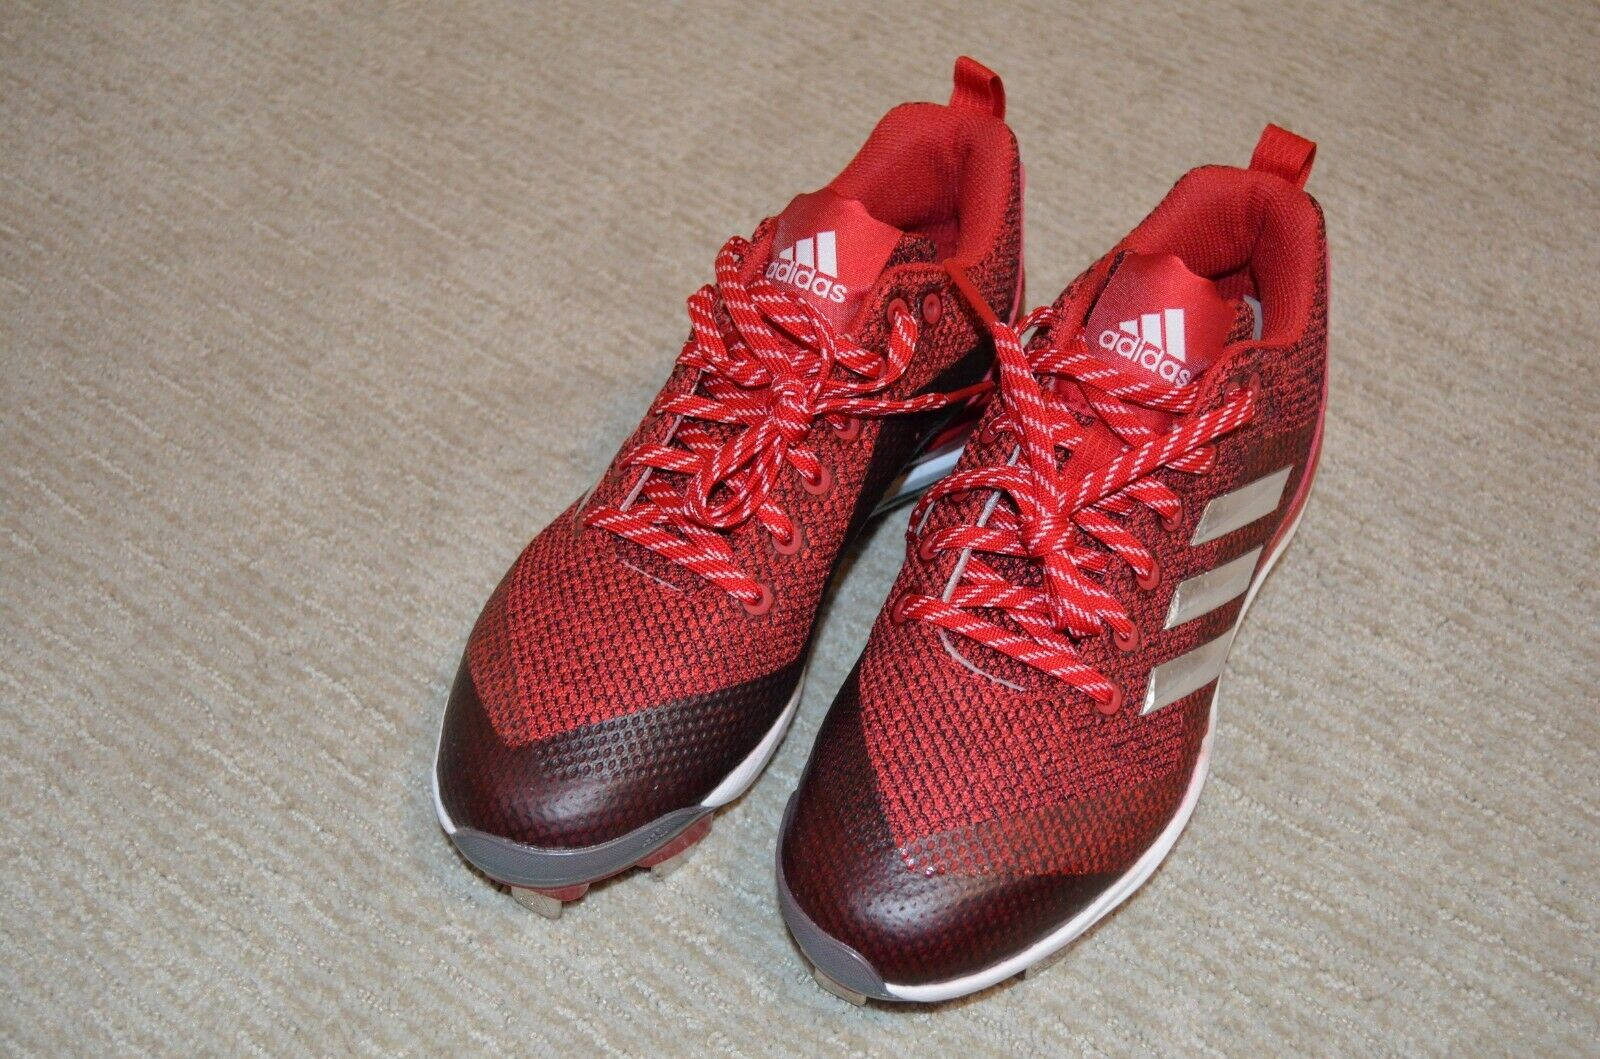 eabd88cfa0780 Adidas Women s Baseball Cleats Alley 5 Low Metal Cleats B39219 Red Size 7.5